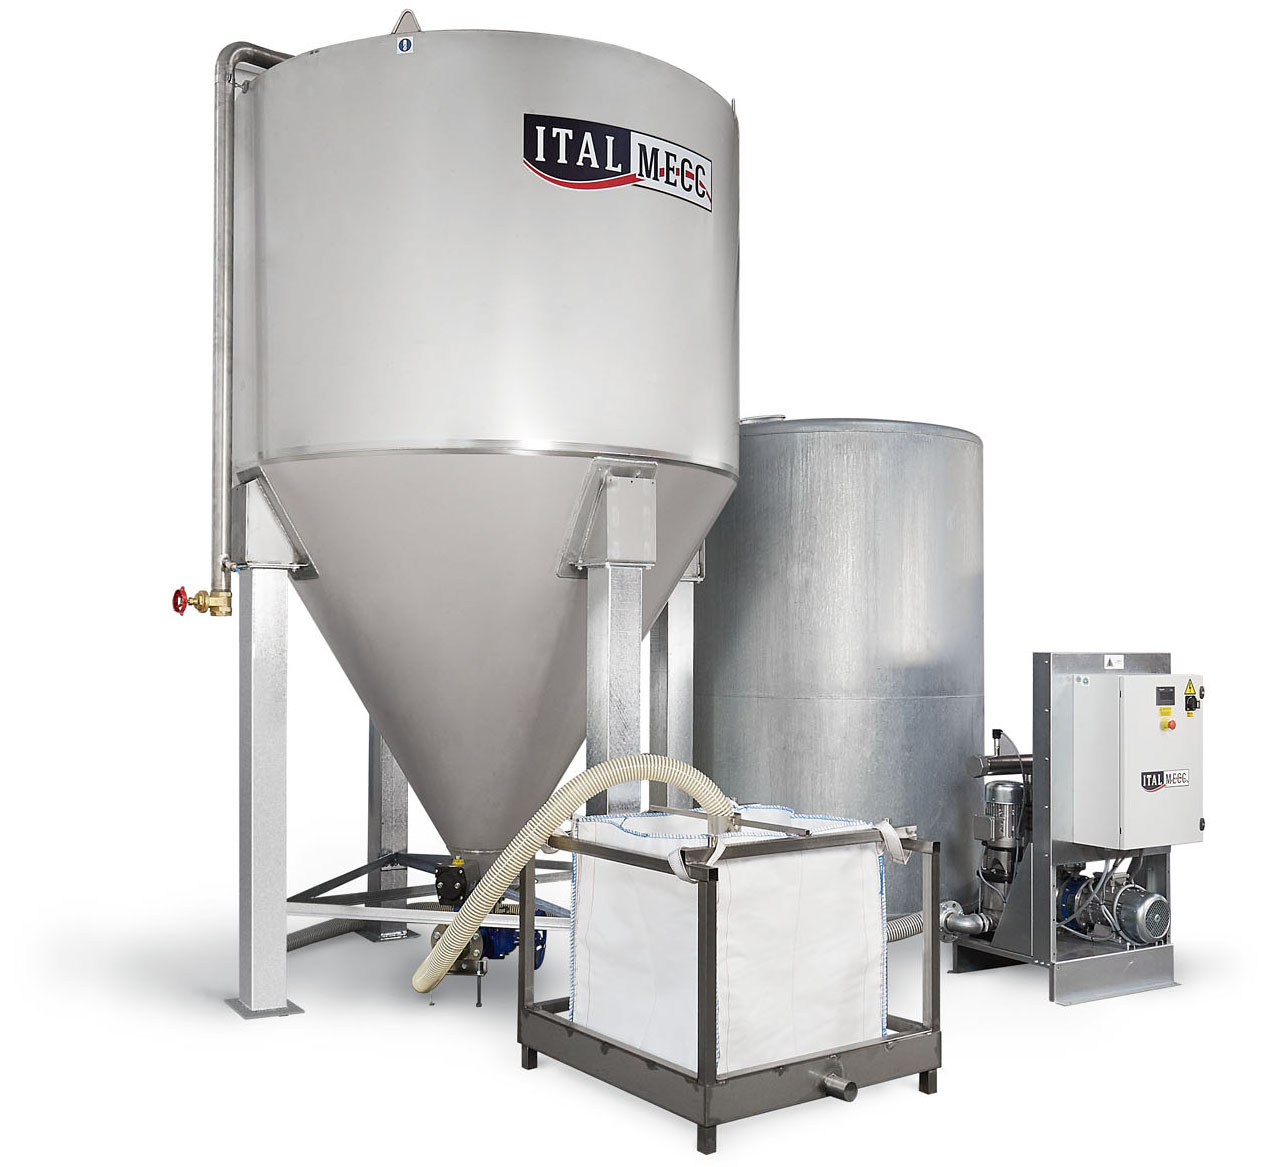 for marble industry - standard water clarifier silo C series - Italmecc - water filtration